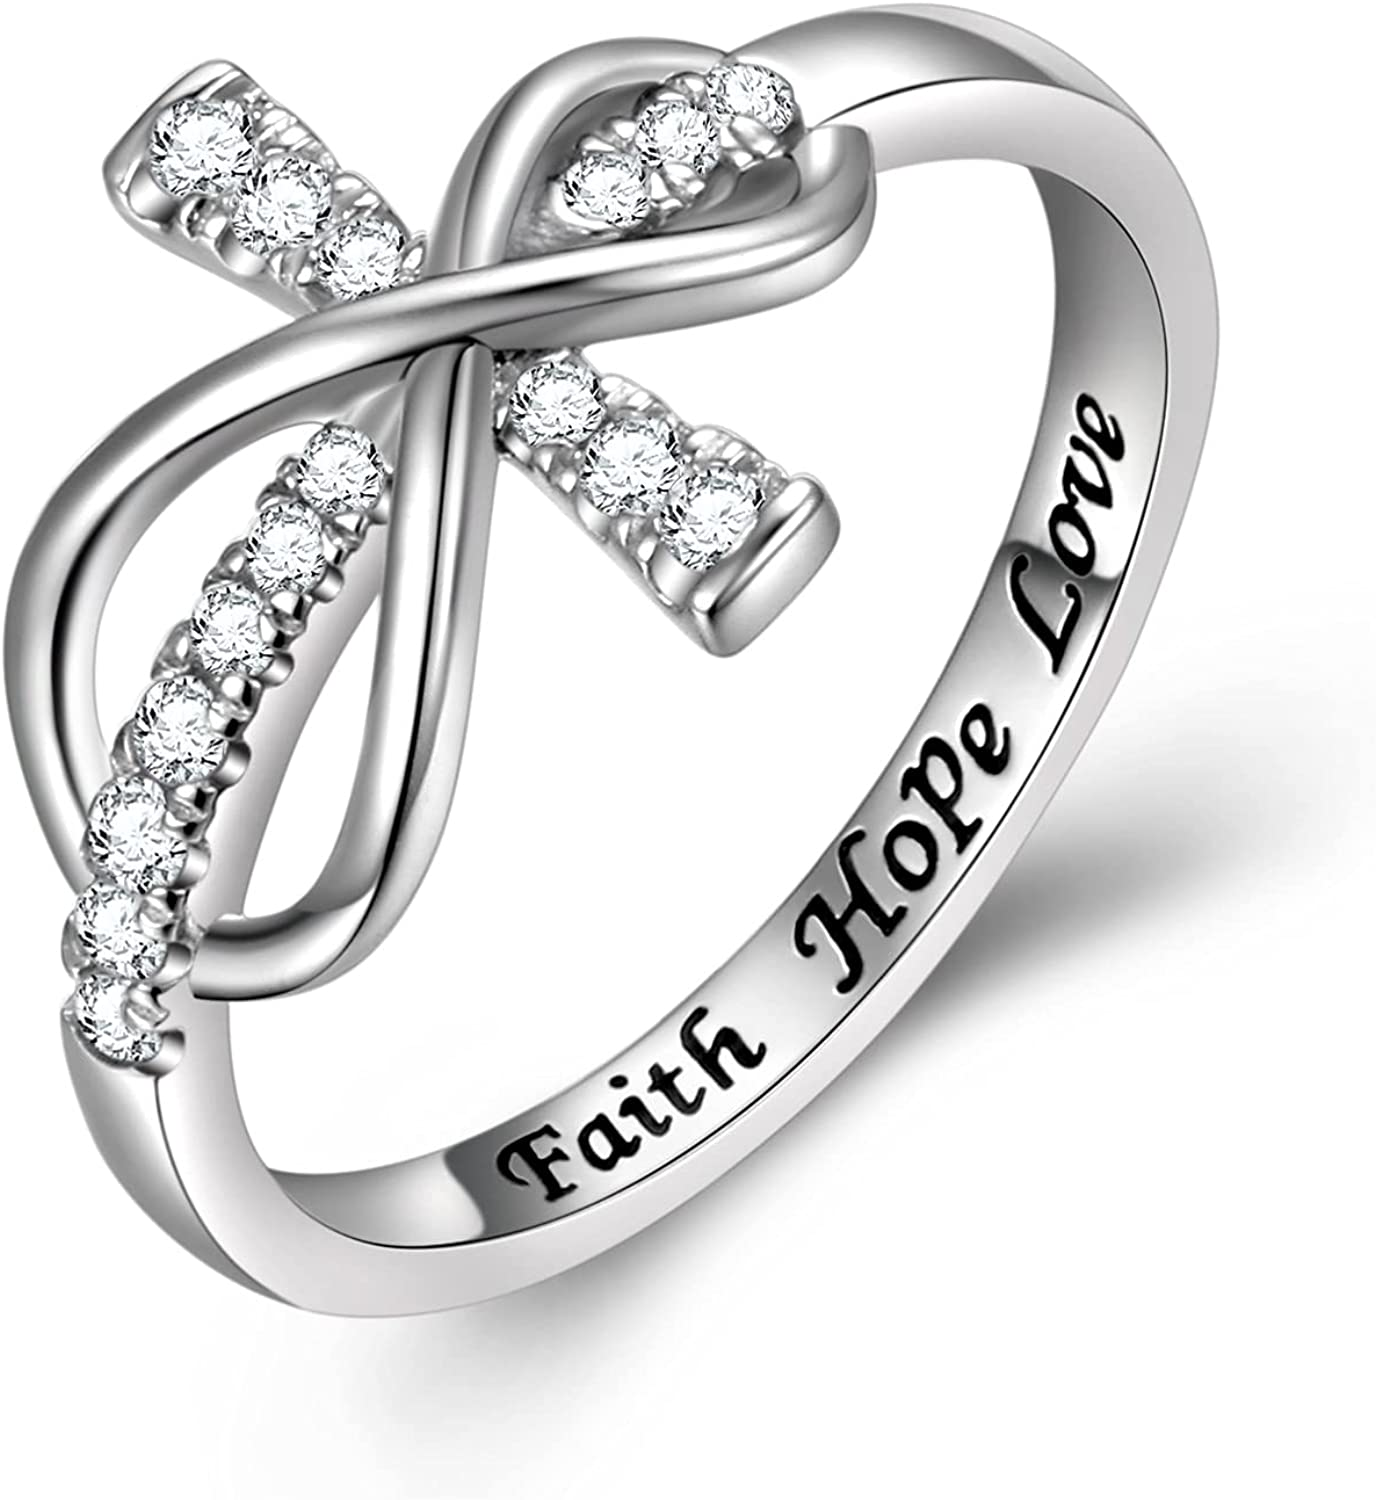 Inspirational Jewelry Opening large release sale 925 Sterling Year-end annual account Silver Lo Faith Hope Engraved